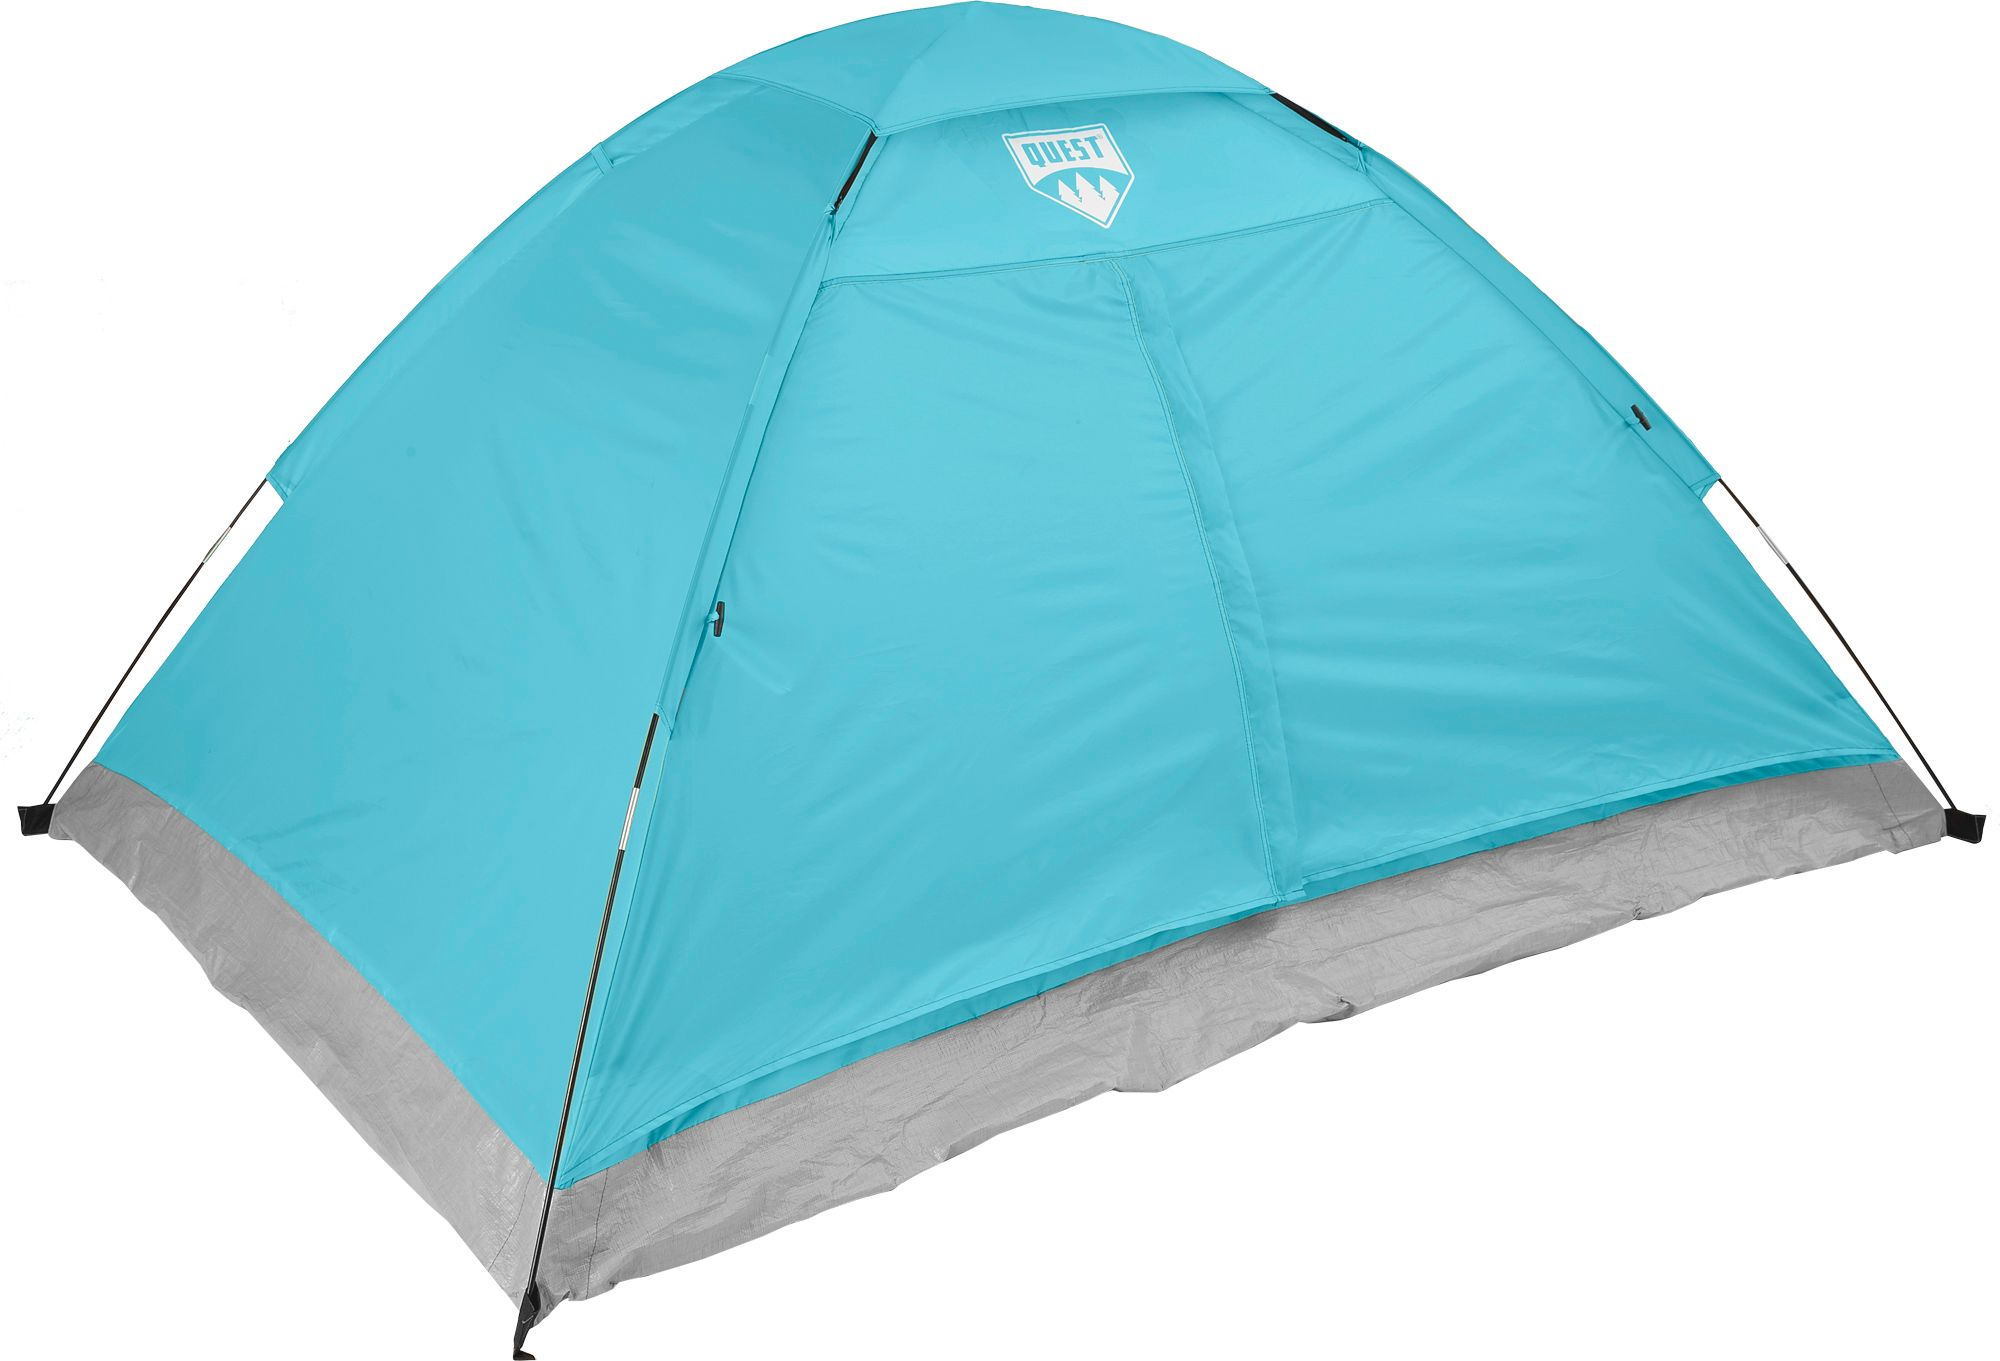 Quest 2-Person Dome Tent  sc 1 st  Field u0026 Stream & Quest 2-Person Dome Tent | Field u0026 Stream